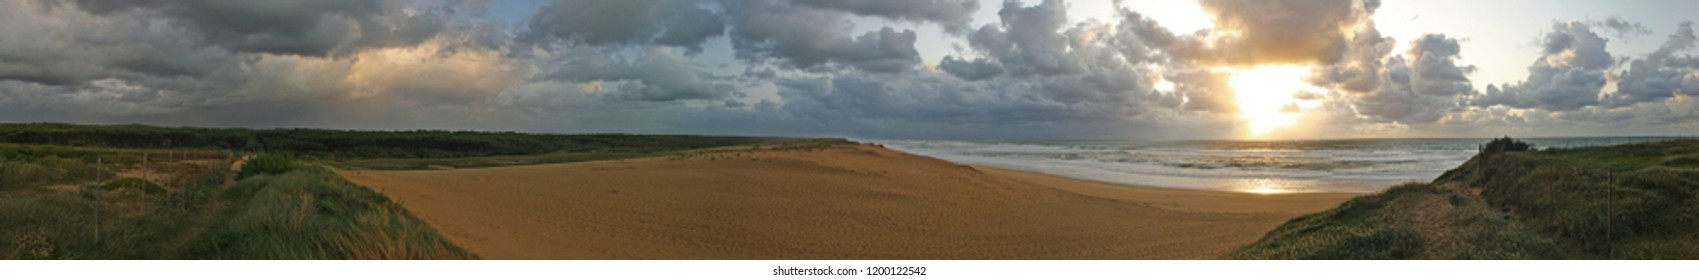 Panorama image of a beach or bay on the atlantic ocean with sand, grass, waves, high rocks and a blue sky with clouds on a sunny day during sunset